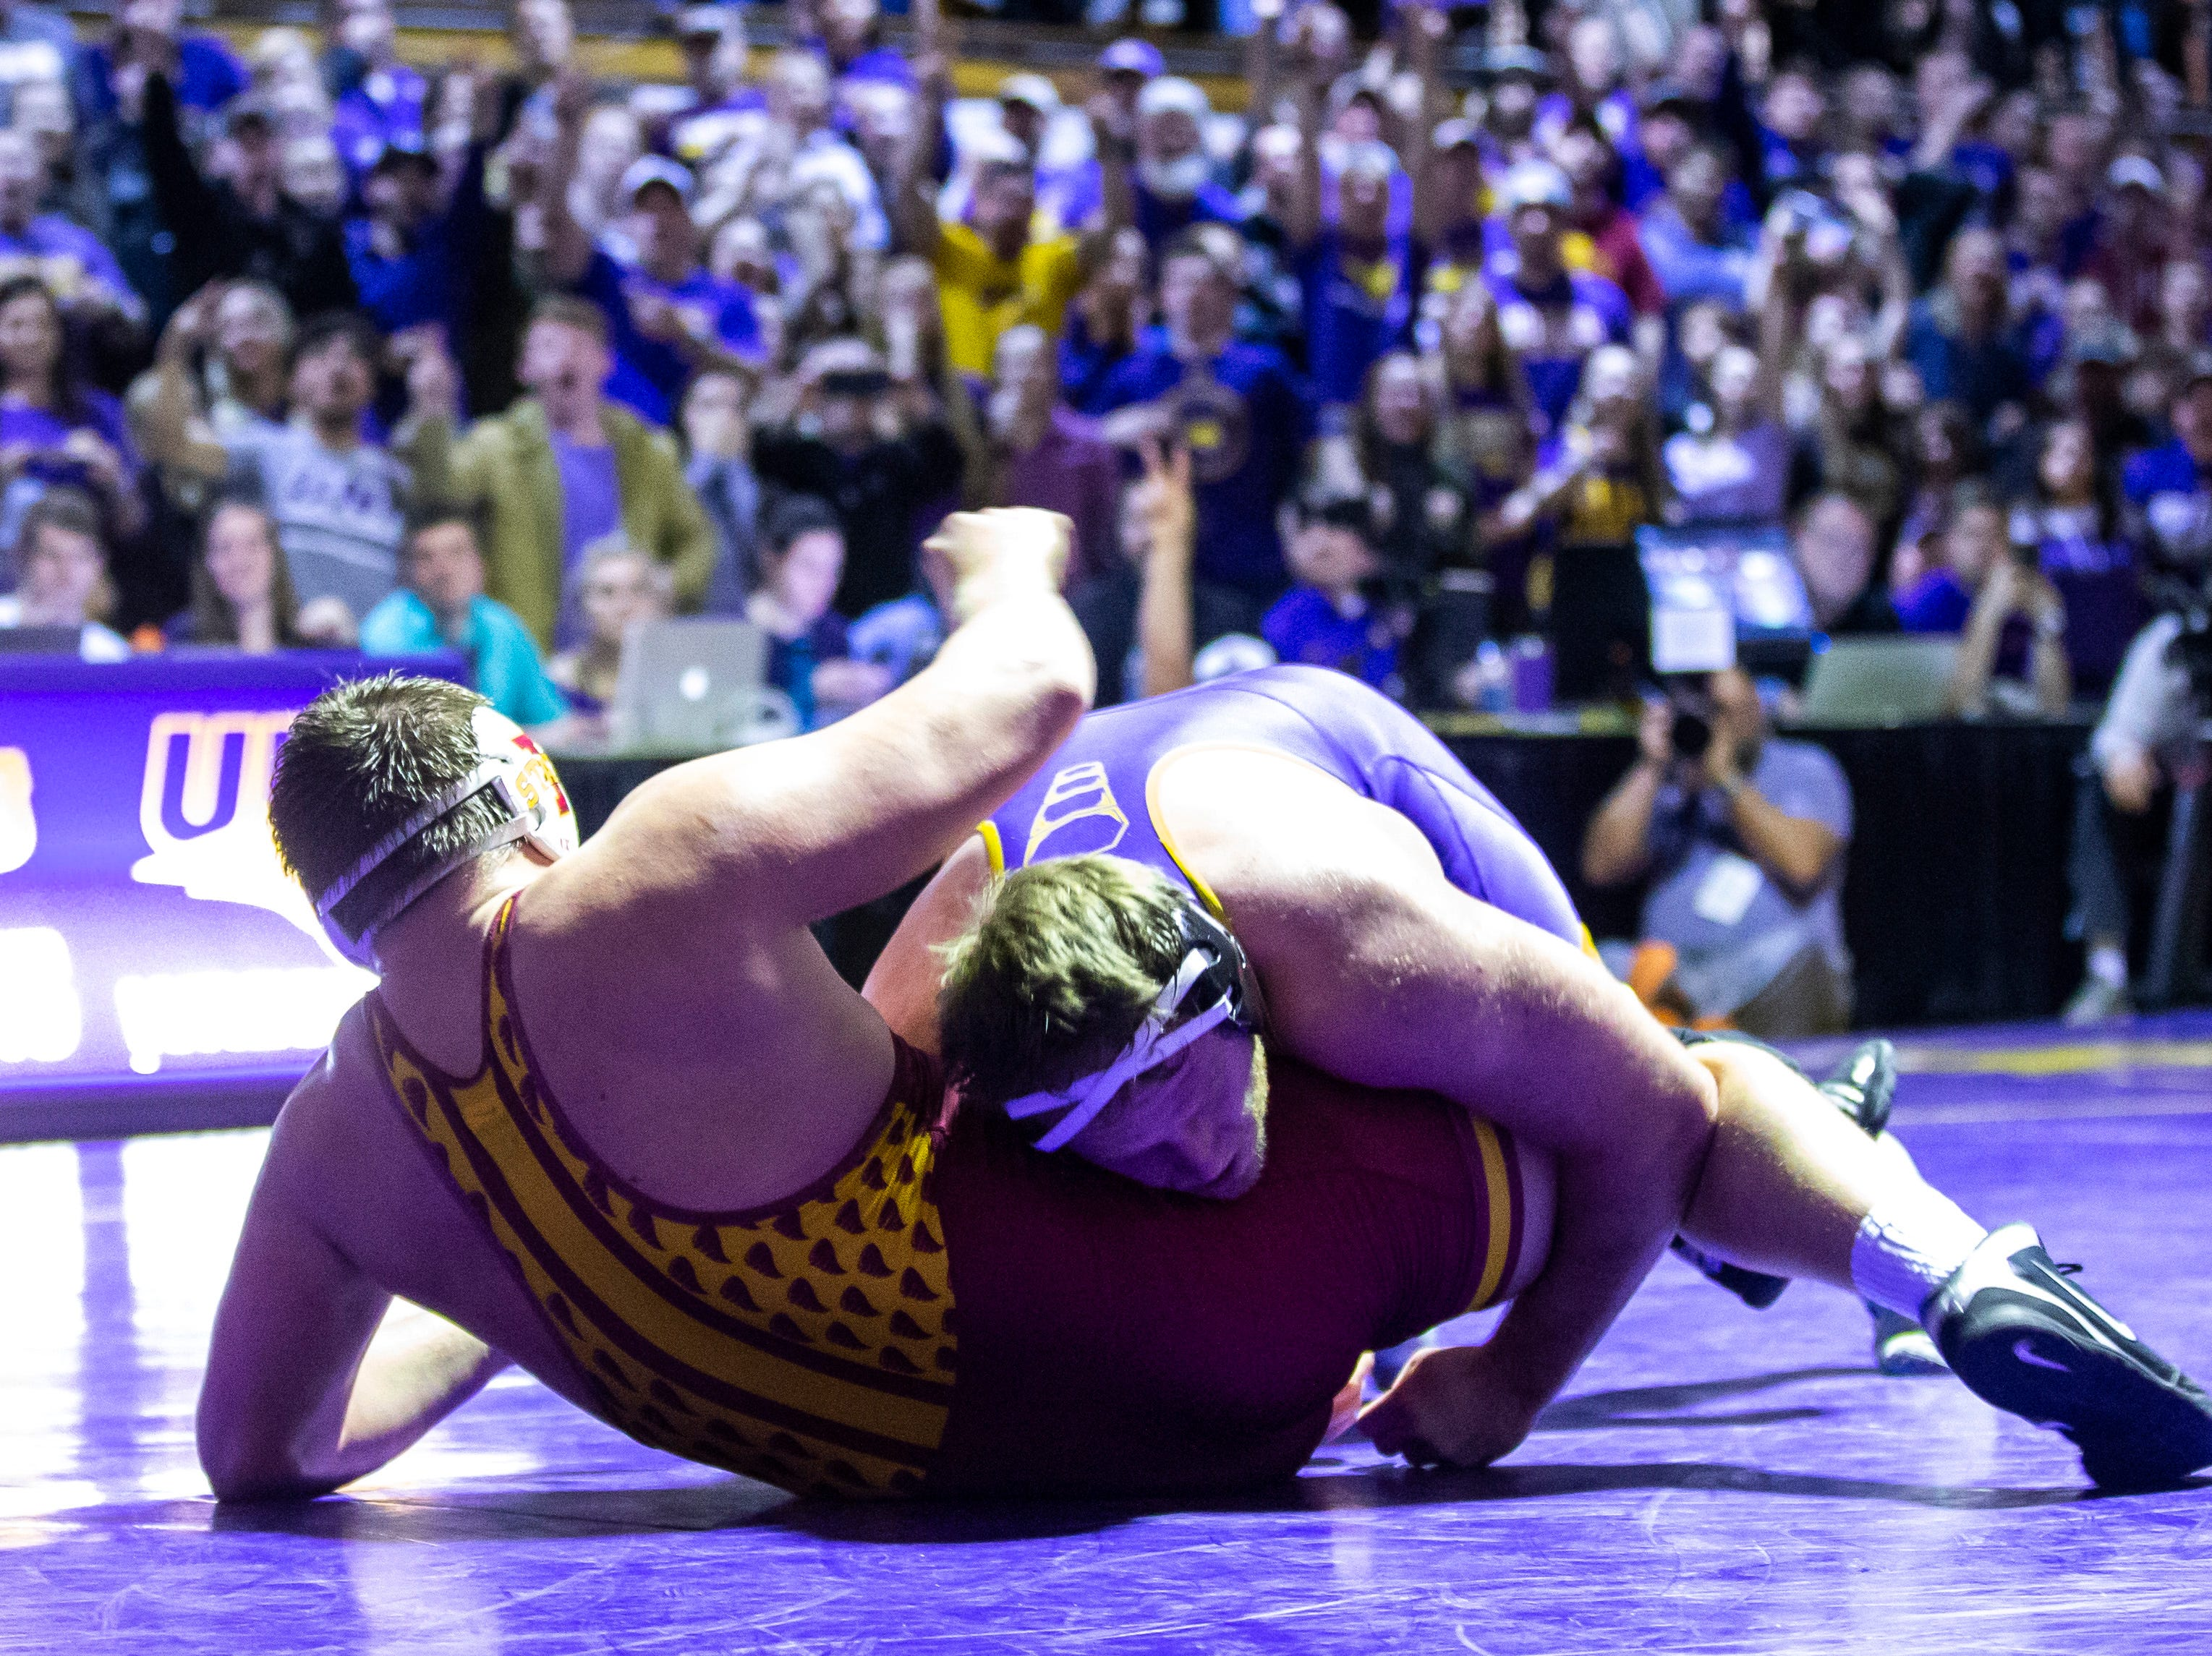 Northern Iowa's Carter Isley scores a takedown on Iowa State's Gannon Gremmel at 285 during a NCAA Big 12 wrestling dual on Thursday, Feb. 21, 2019 at the West Gymnasium in Cedar Falls, Iowa.